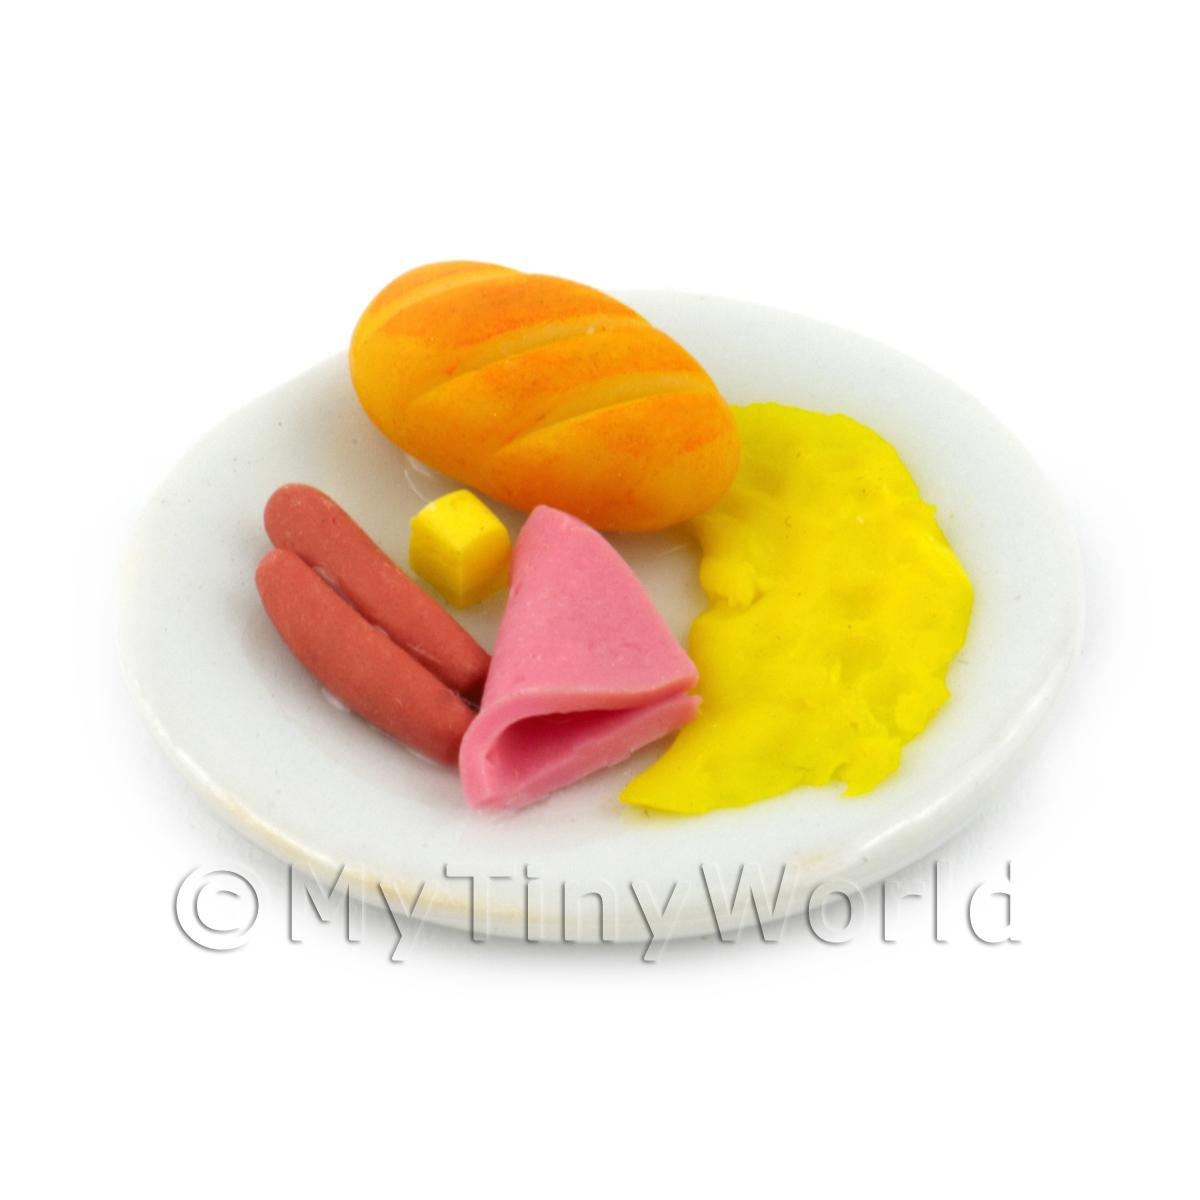 Dolls House Miniature American Breakfast With Omlette